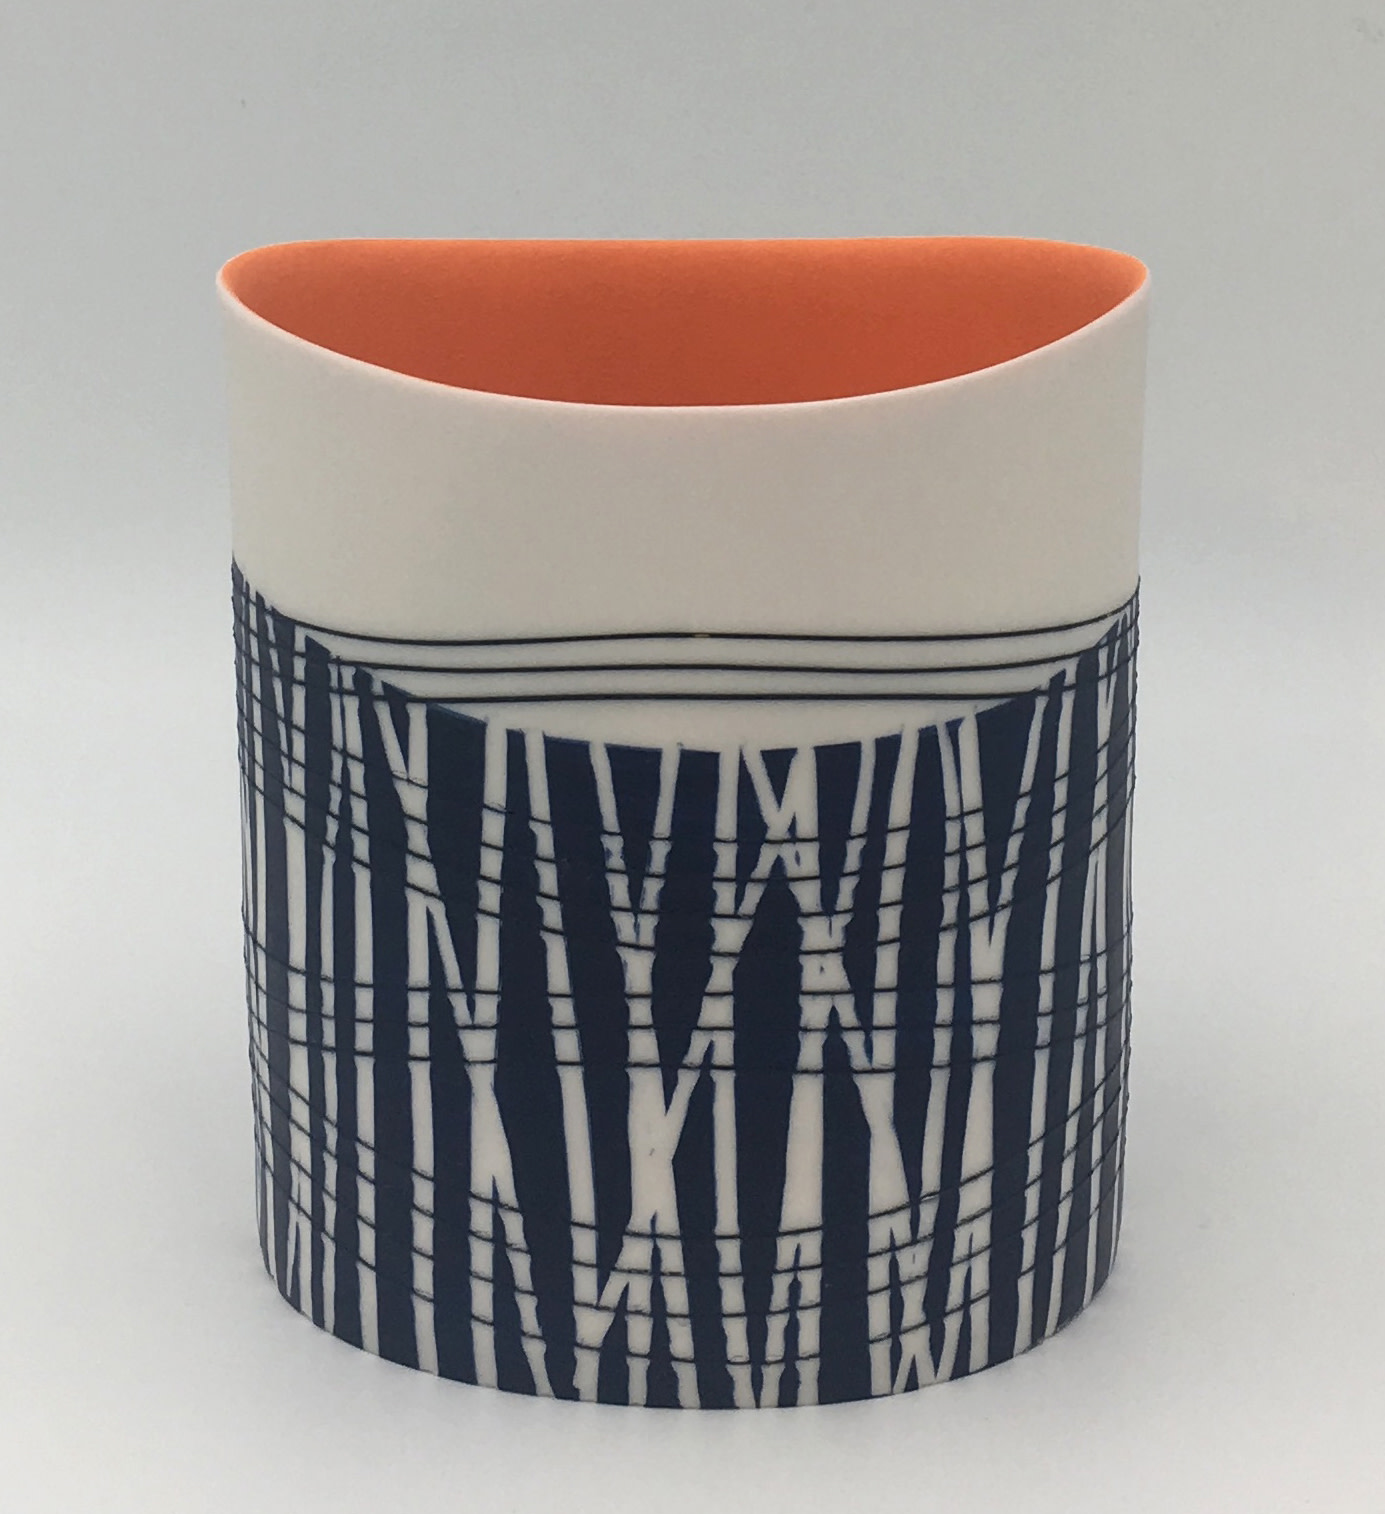 "<span class=""link fancybox-details-link""><a href=""/artists/195-lara-scobie/works/6523-lara-scobie-oval-vessel-with-orange-interior-2019/"">View Detail Page</a></span><div class=""artist""><strong>Lara Scobie</strong></div> <div class=""title""><em>Oval Vessel with Orange Interior</em>, 2019</div> <div class=""medium"">Porcelain</div><div class=""copyright_line"">Ownart: £28 x 10 Months, 0% APR</div>"